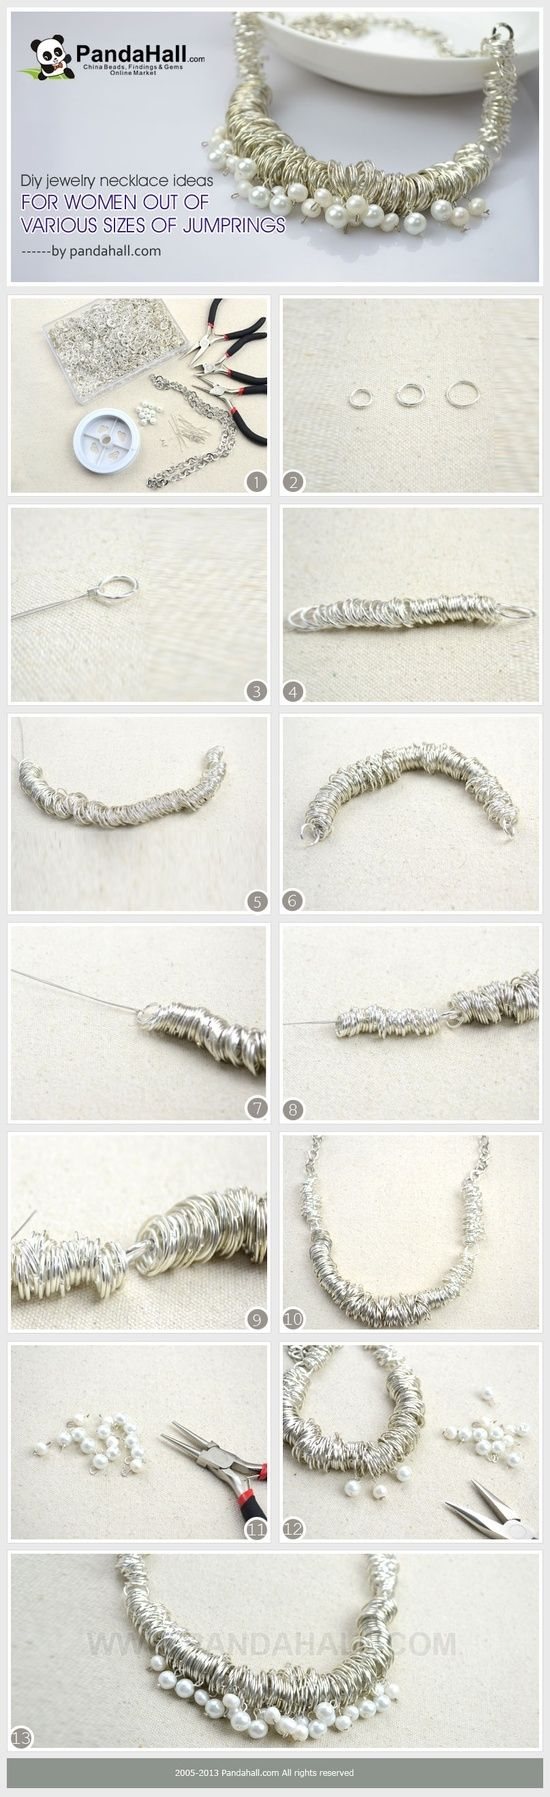 The jumprings assembled with wire can be made into a simple chain, or further contribute more intricate pattern in chain-mail diy jewelry. However, in this post I will show you another usage via the necklace ideas for women. by wanting